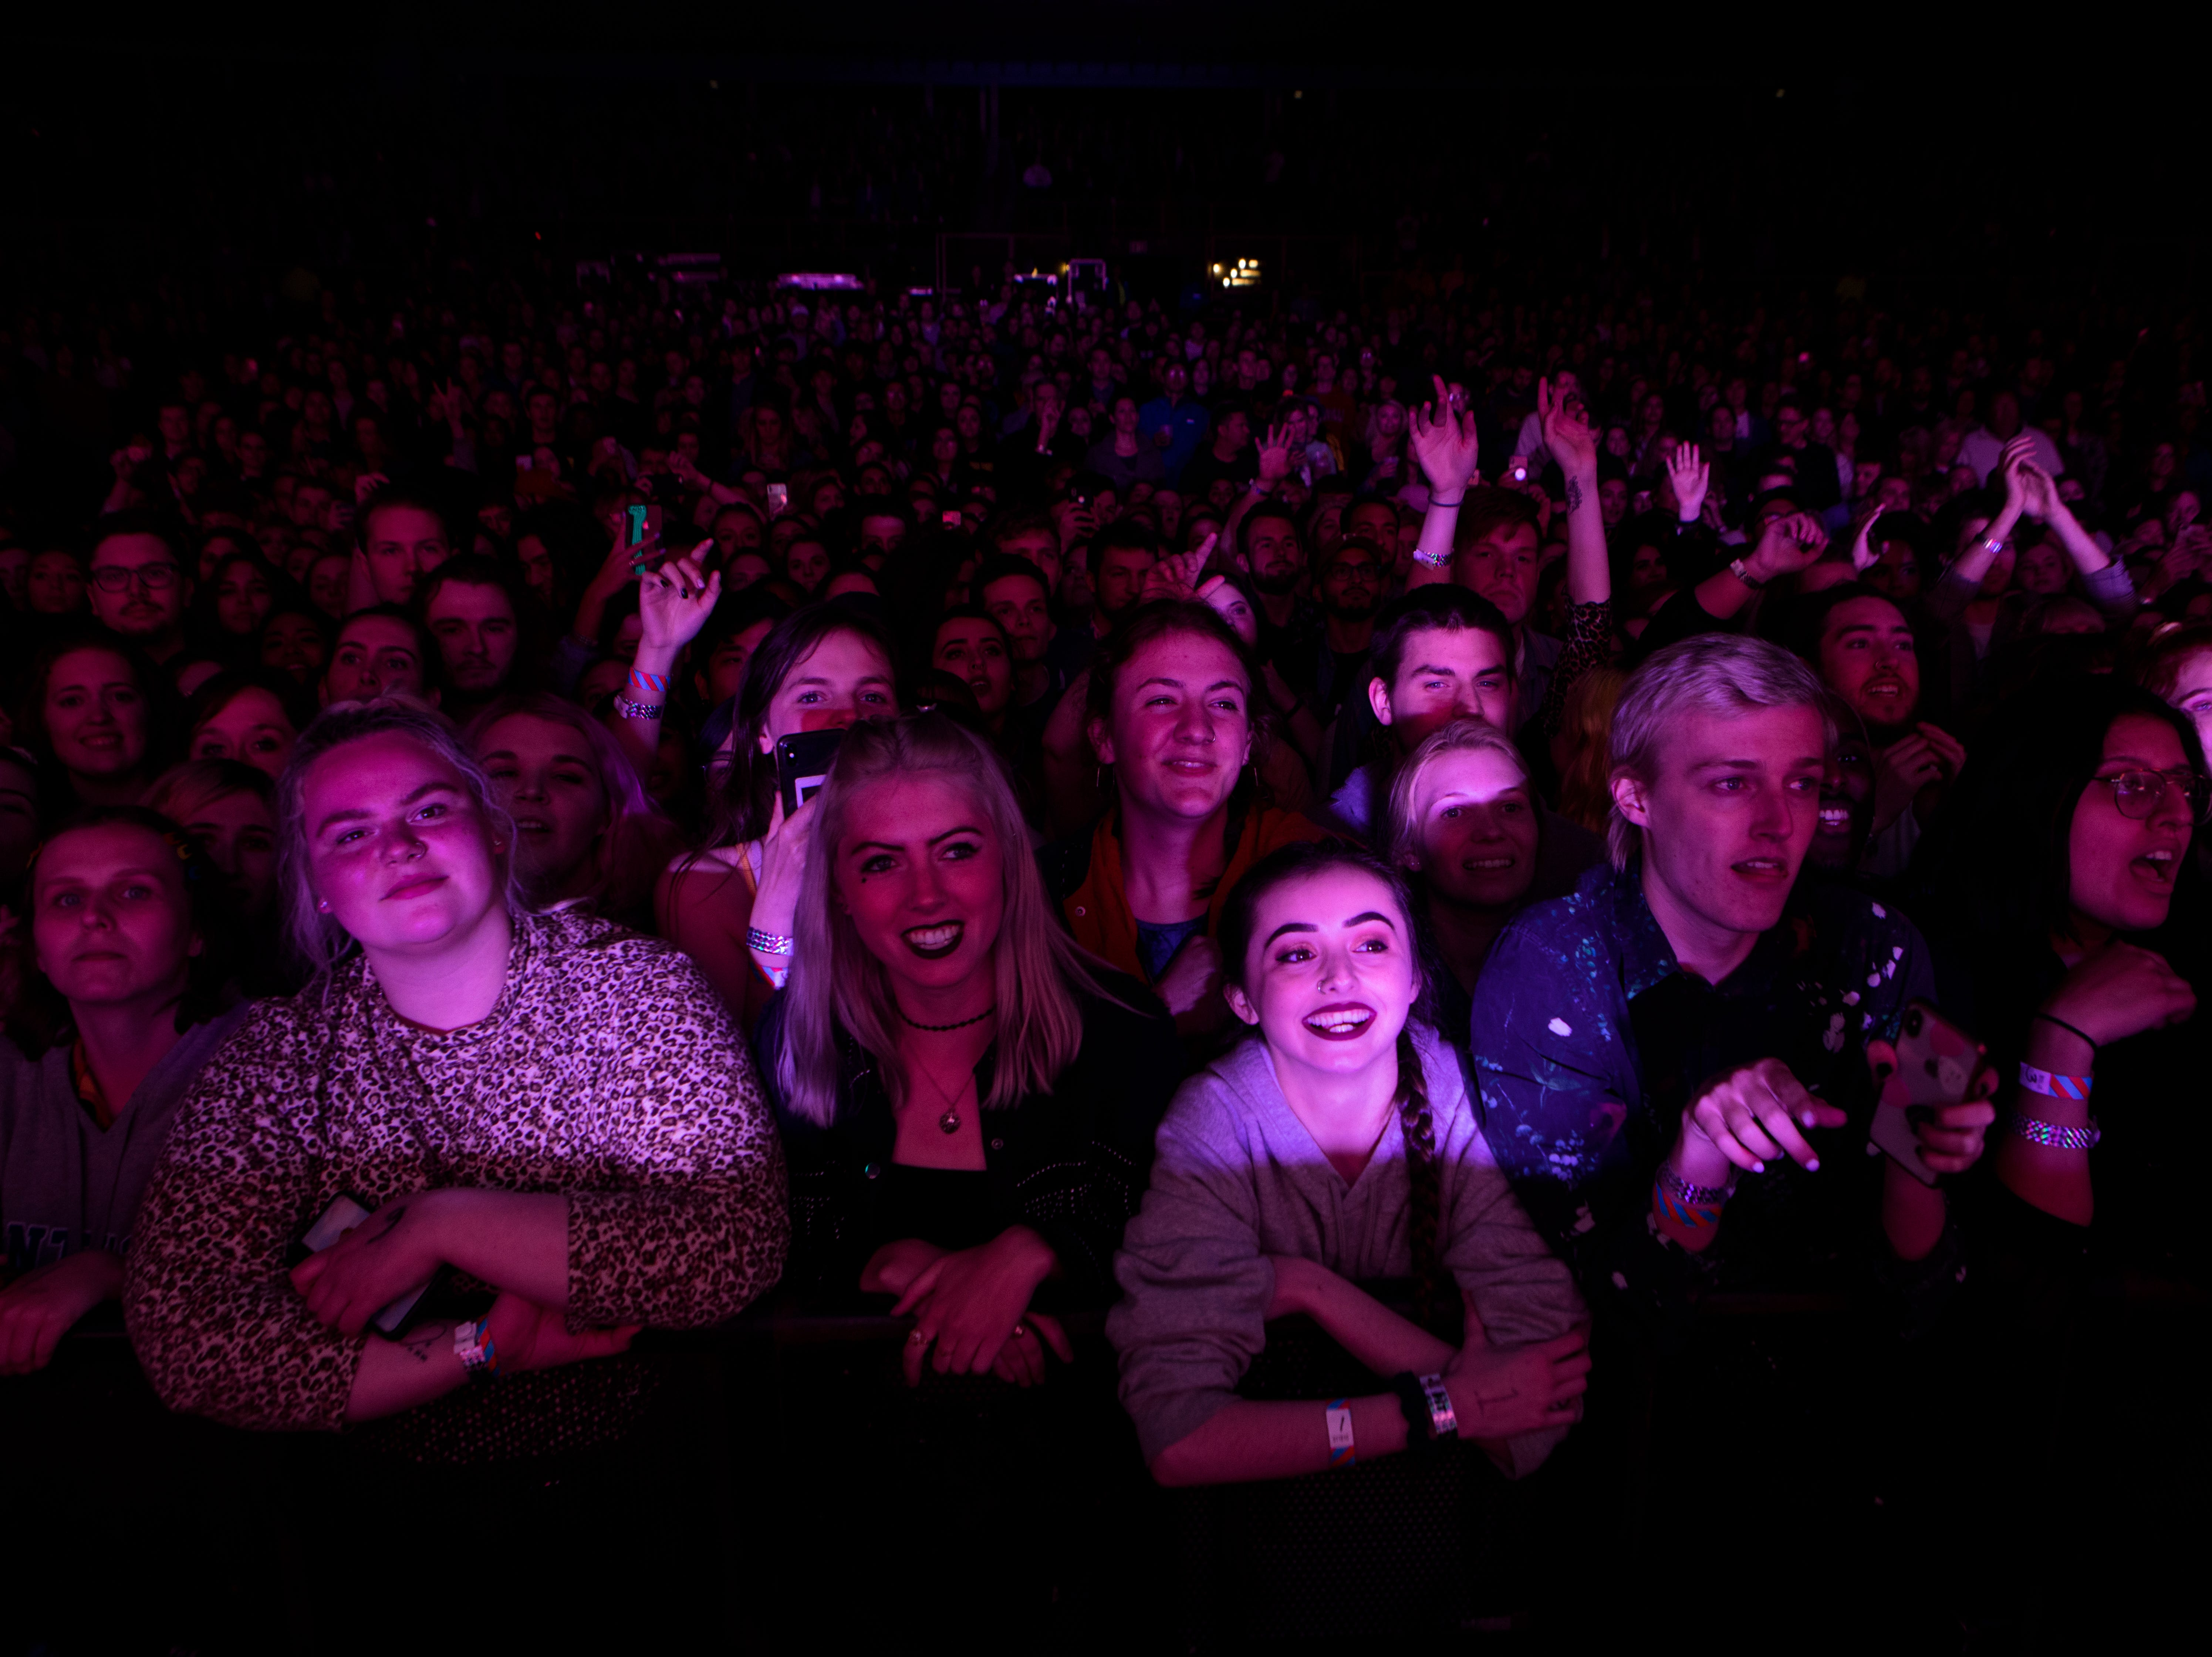 Fans cheer as The 1975 perform at the PNC Pavilion on Sunday, May 12, 2019 in Cincinnati.